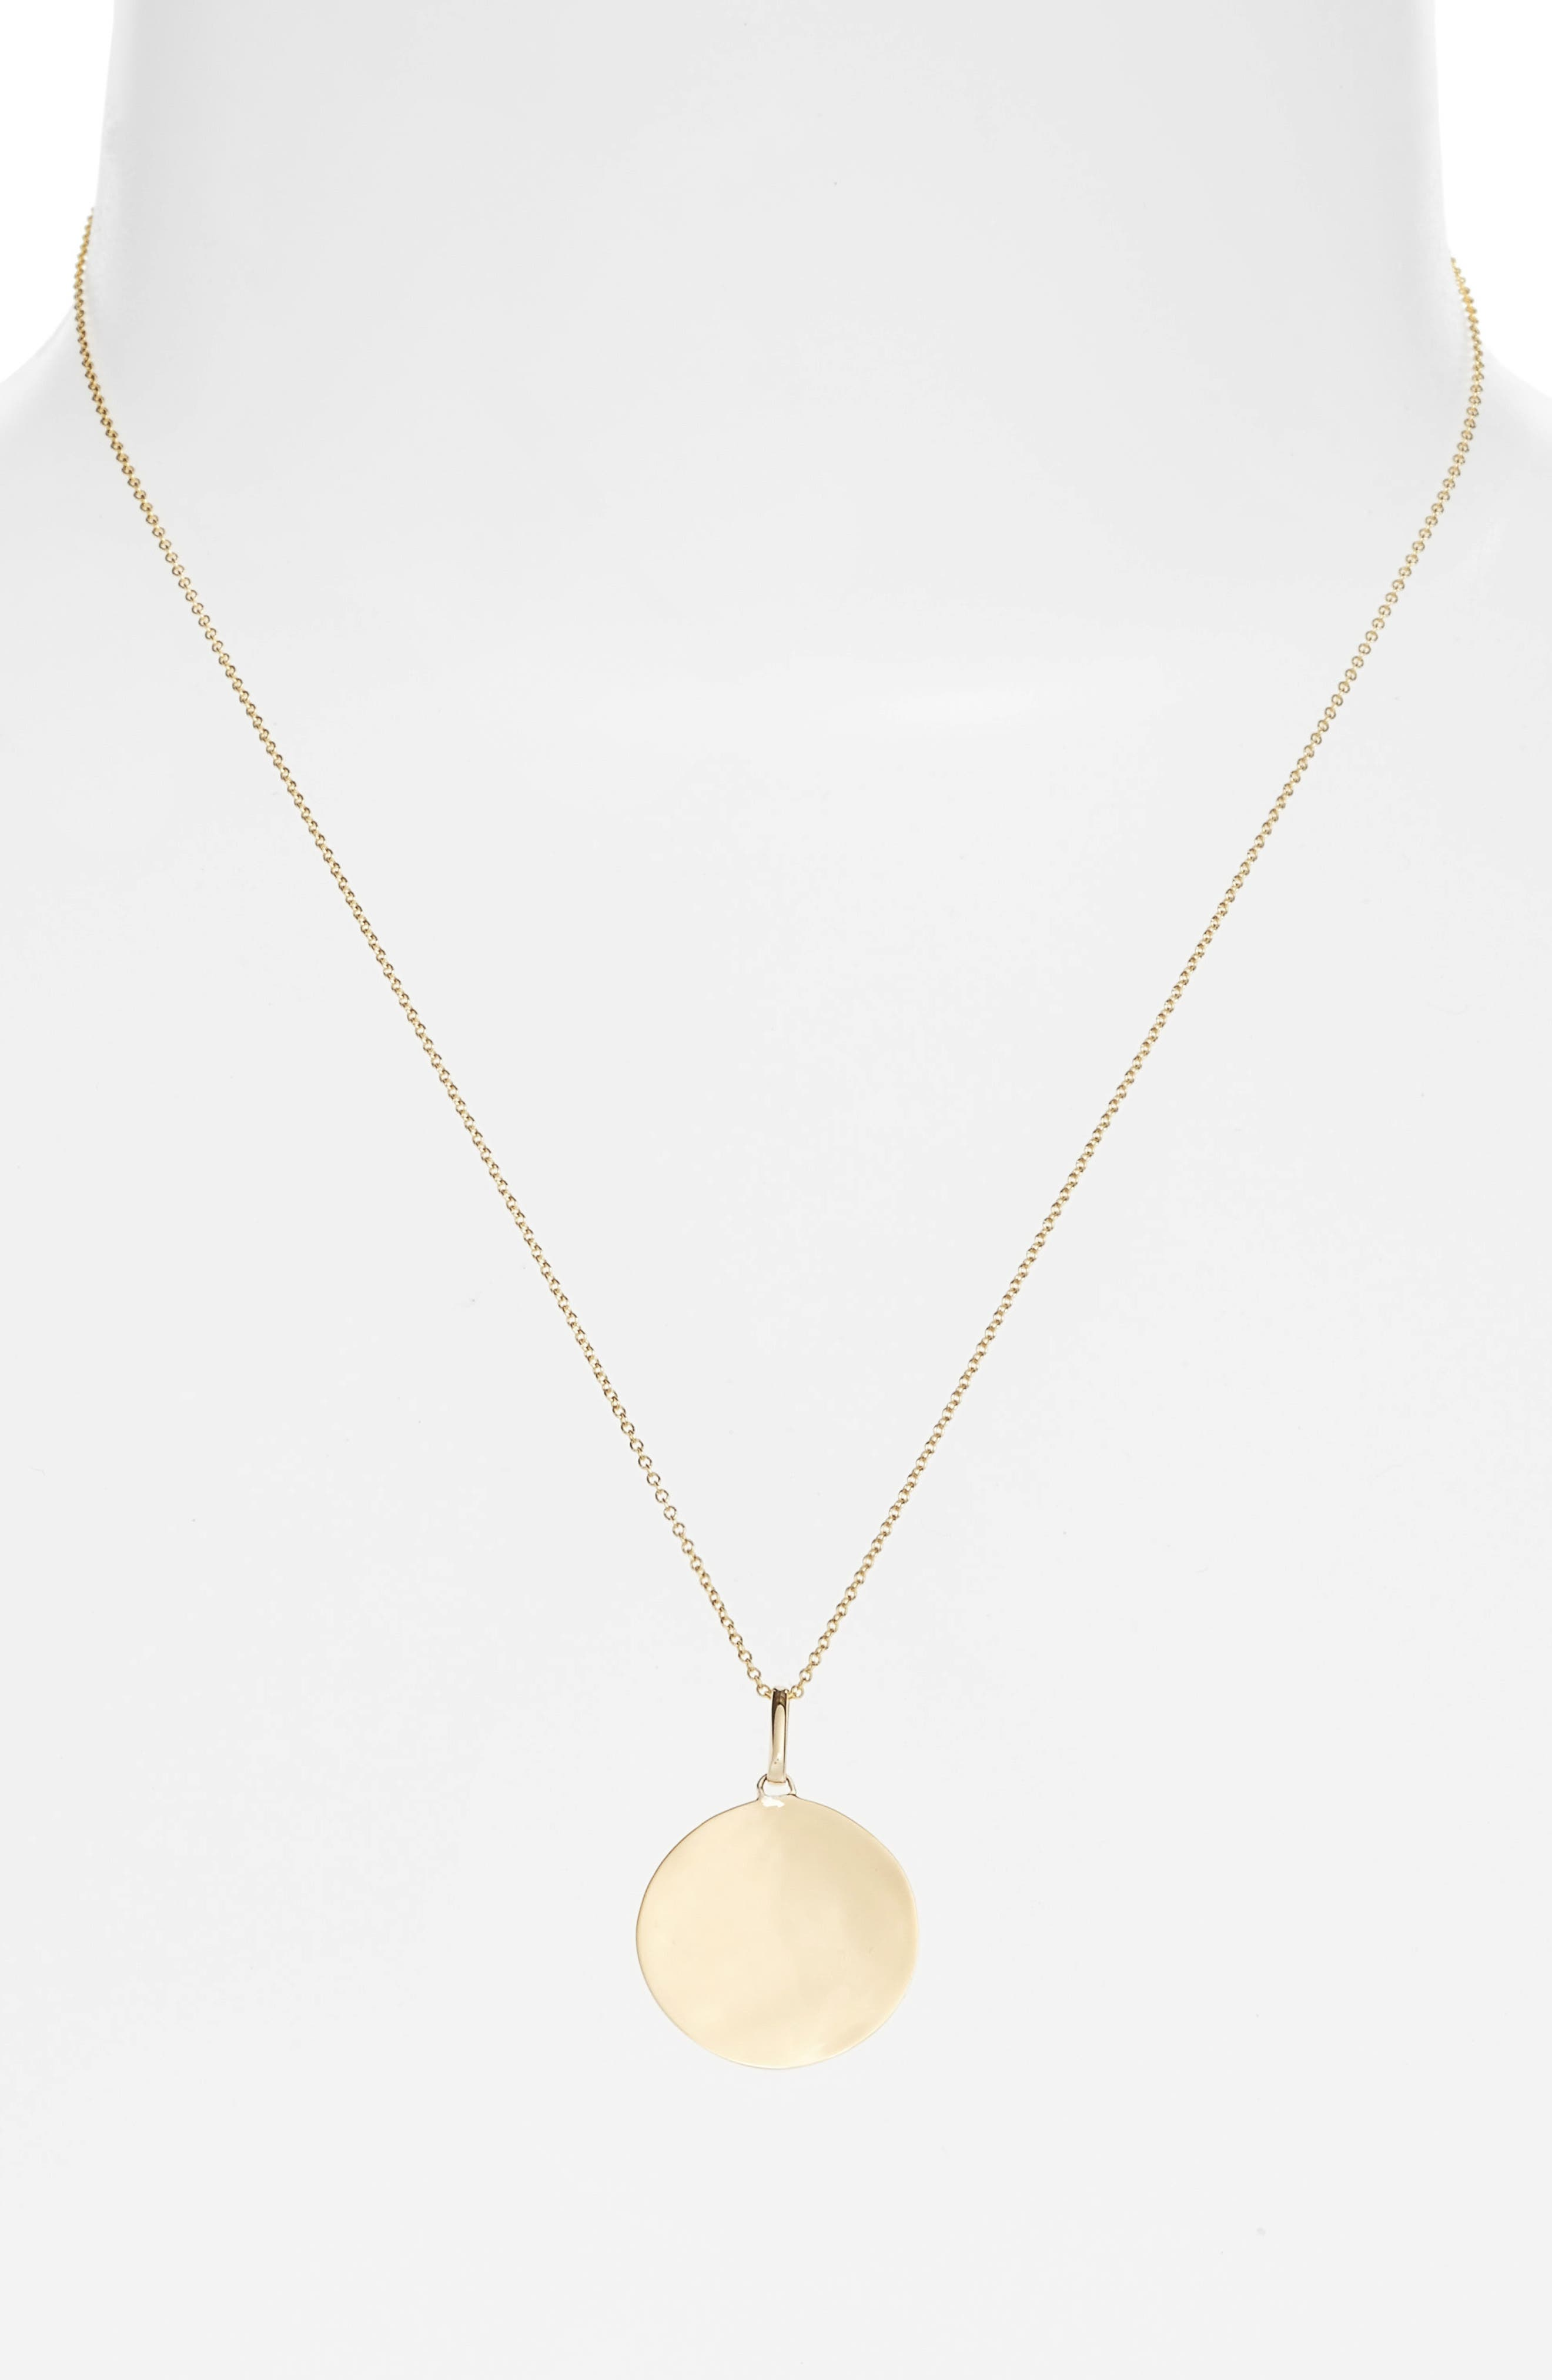 Alternate Image 1 Selected - Bony Levy Concave Large Pendant Necklace (Nordstrom Exclusive)